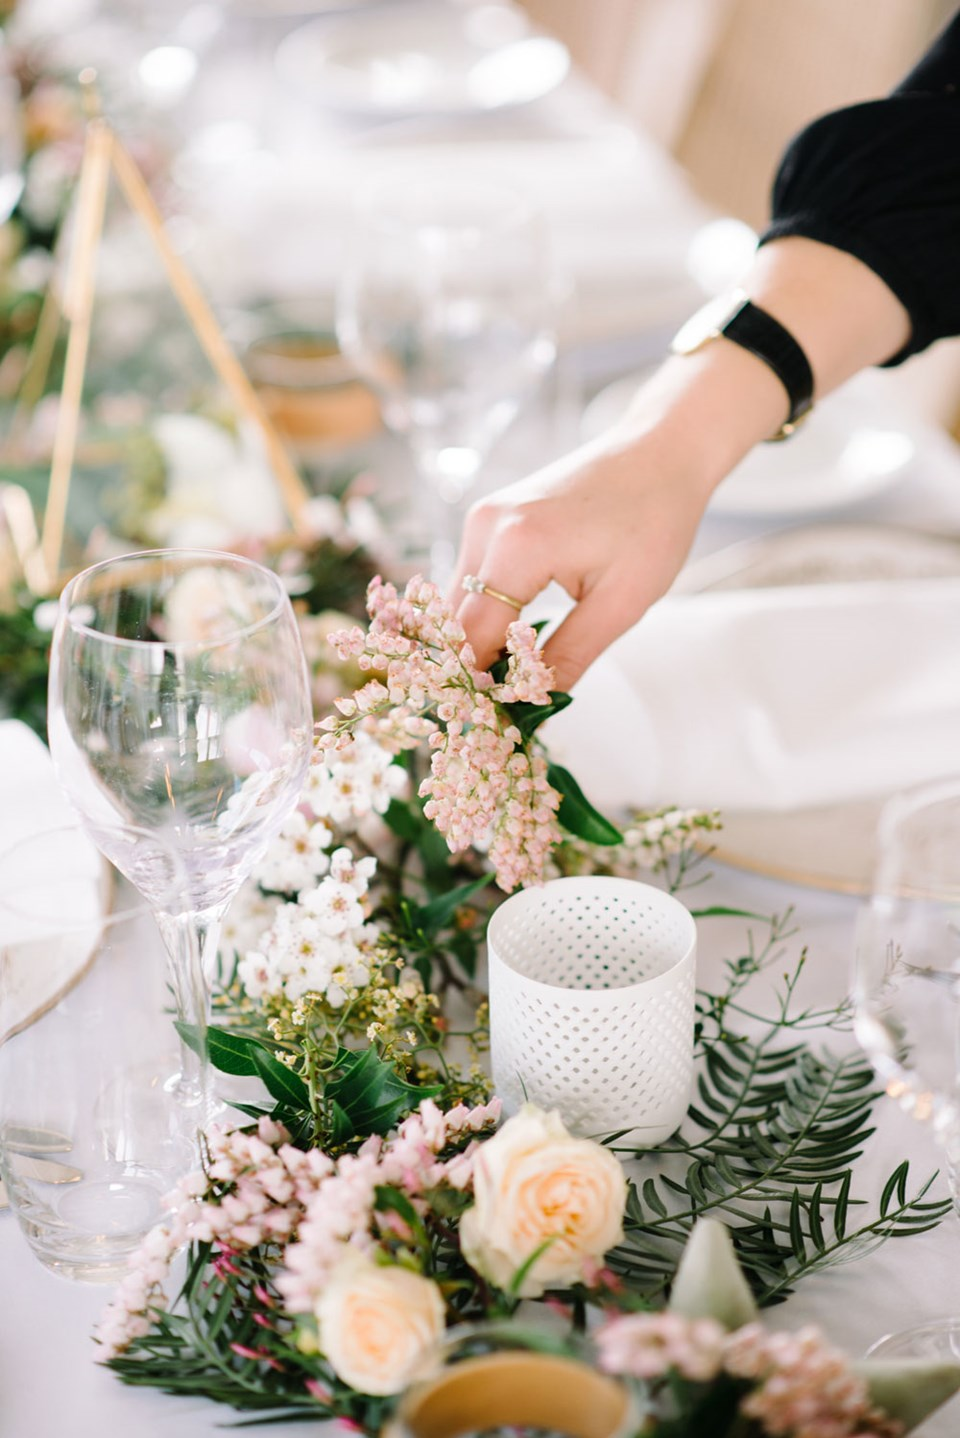 toast-weddings-spring-lunch-223-wfuwrdqptfol